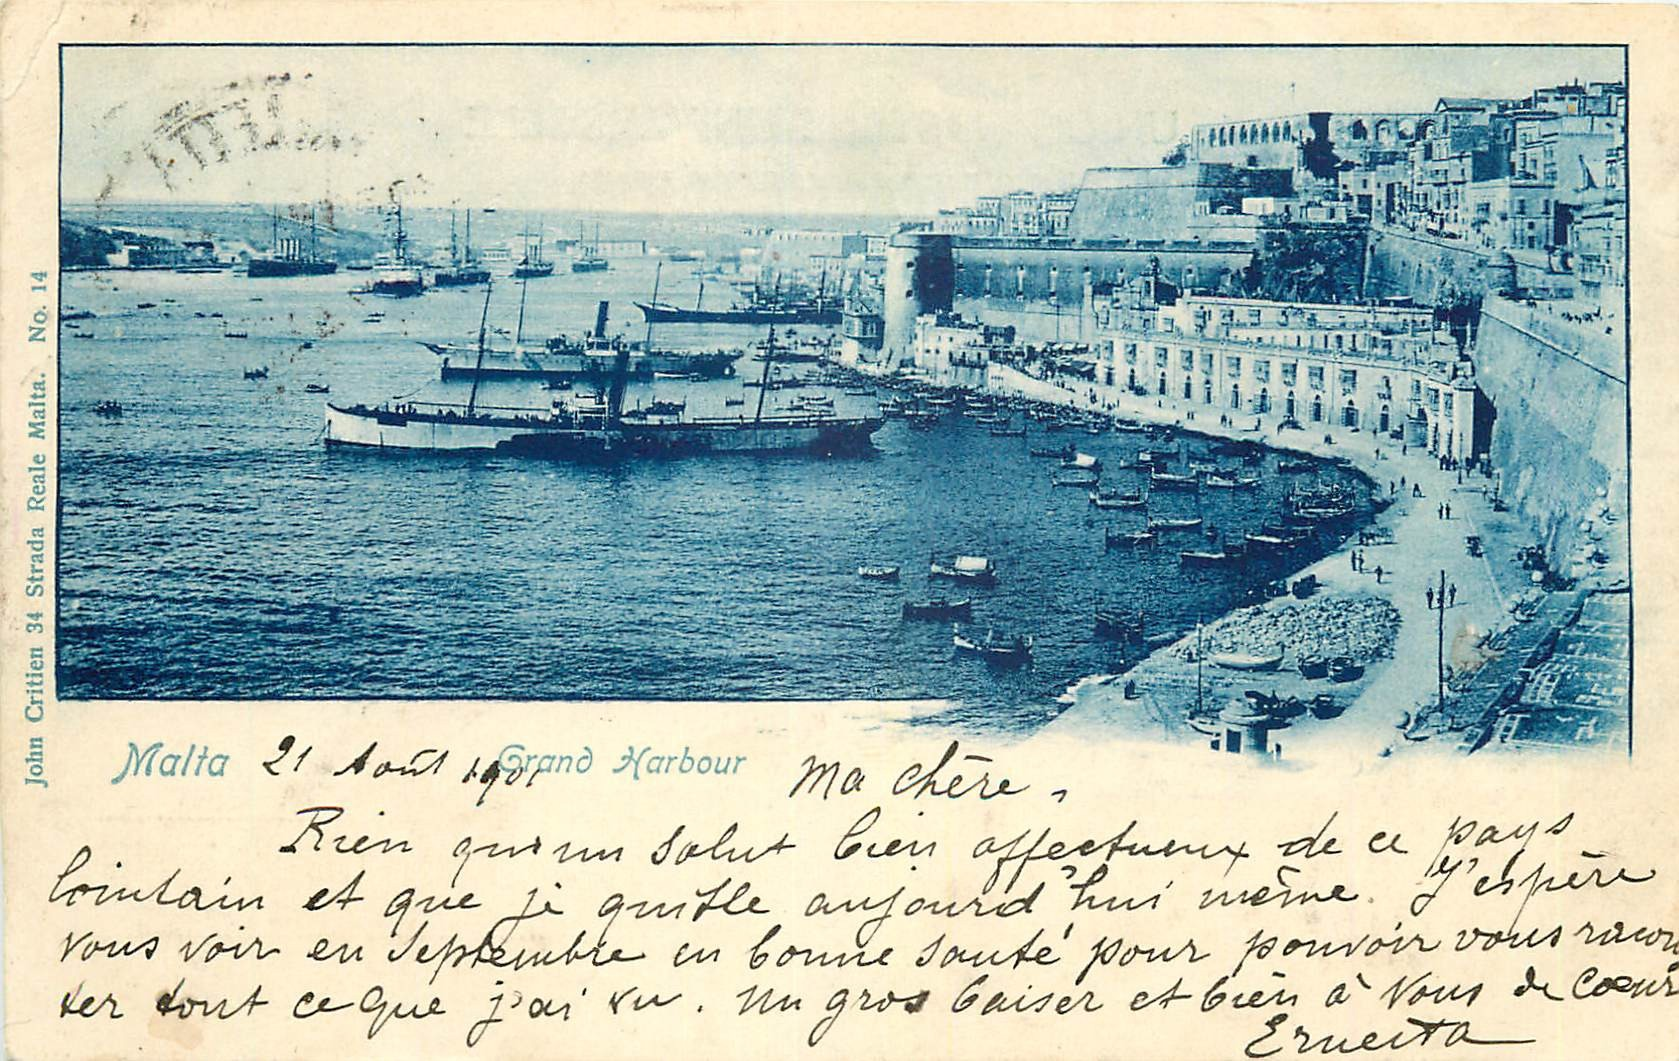 MALTA MALTE. Grand Harbour 1901